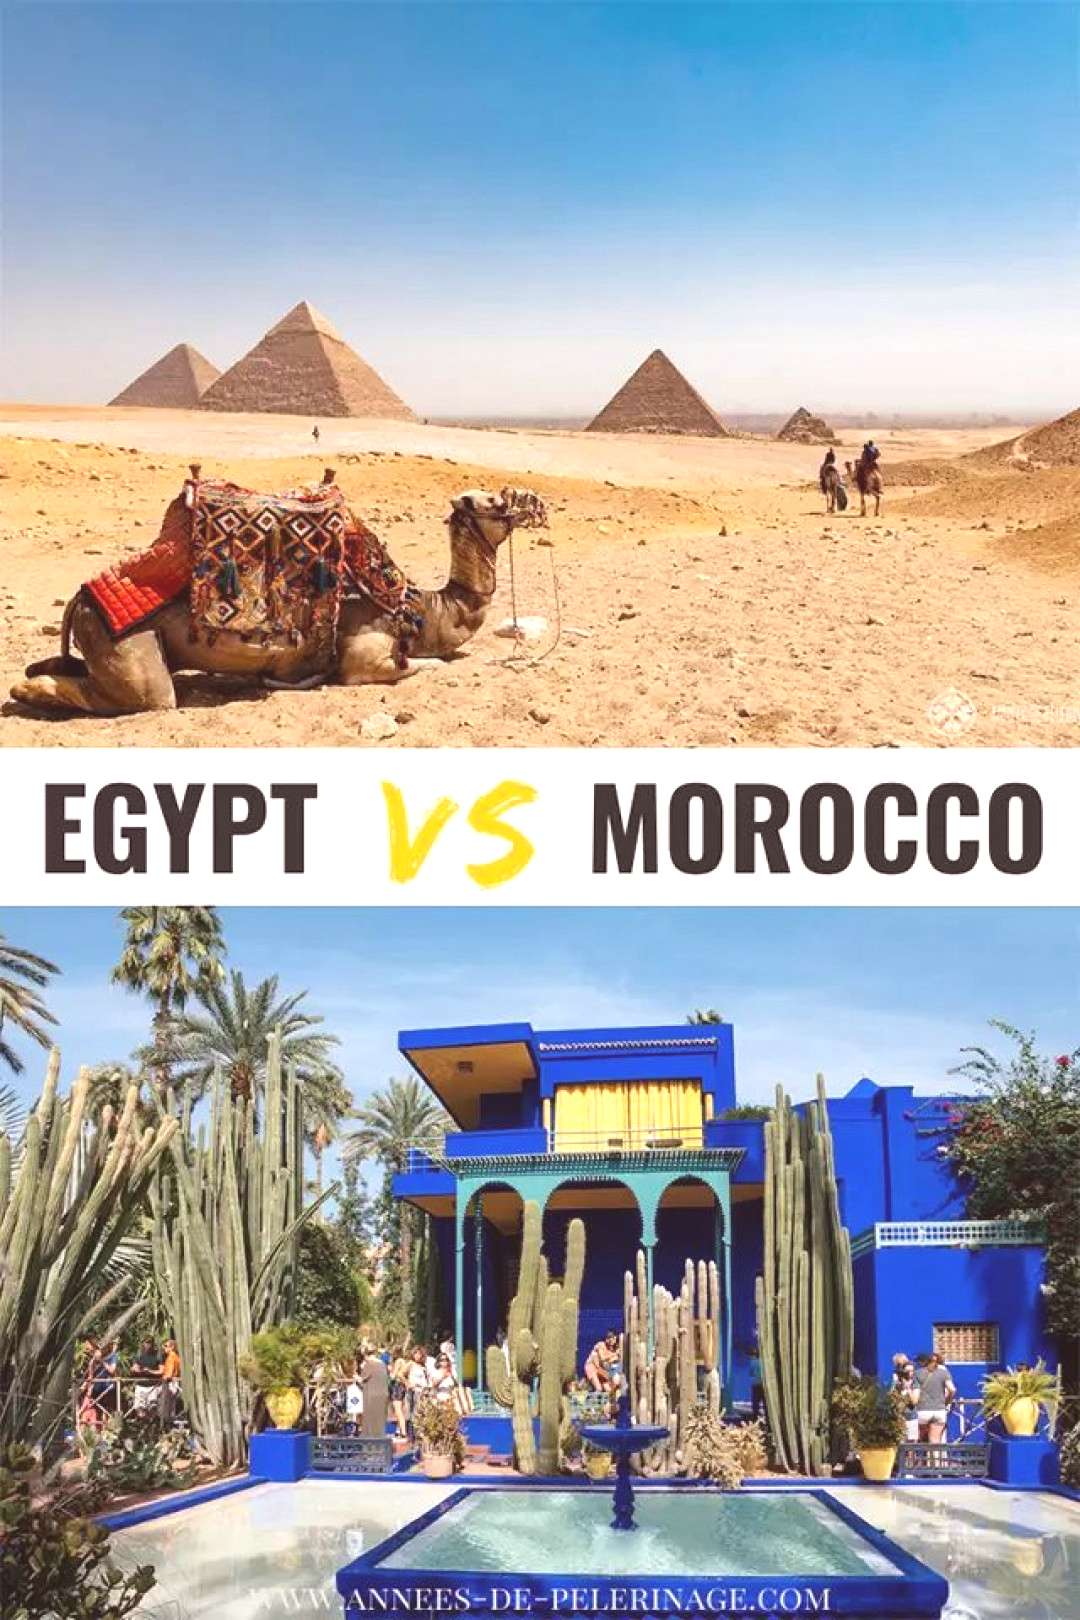 Egypt vs Morocco - which country should you visit? Egypt vs Morocco - which country should you visi